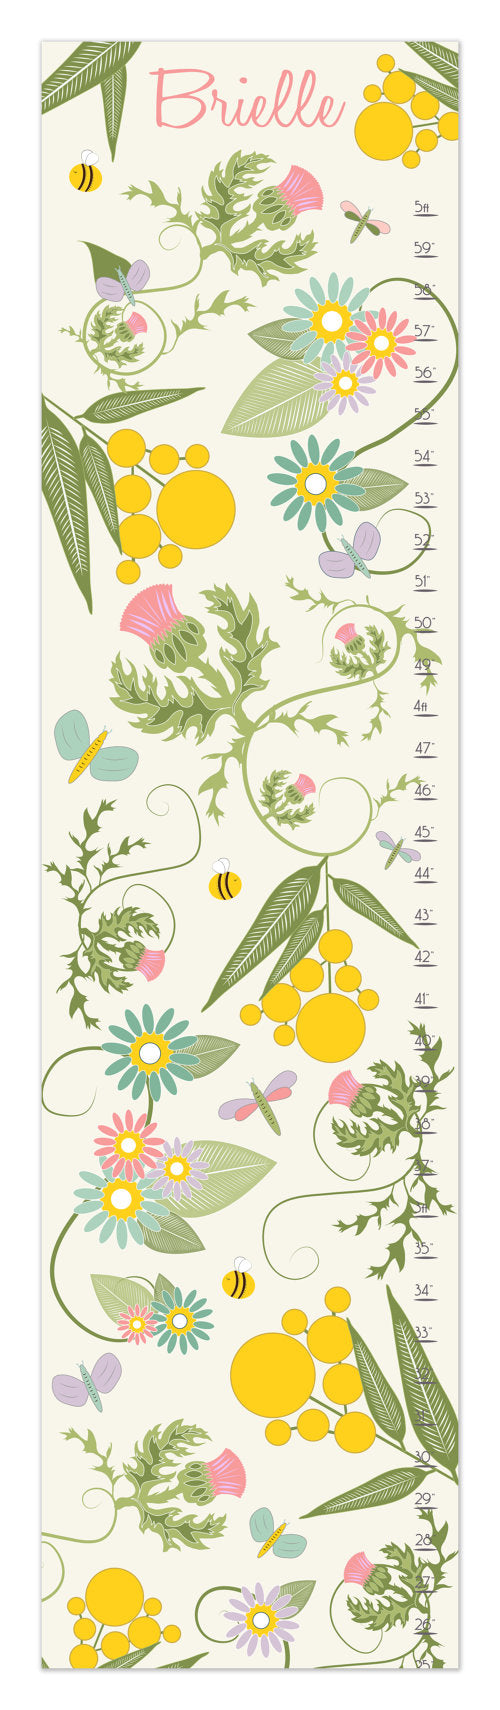 Garden Personalized Growth Chart - Nursery Decor - Children's Gifts